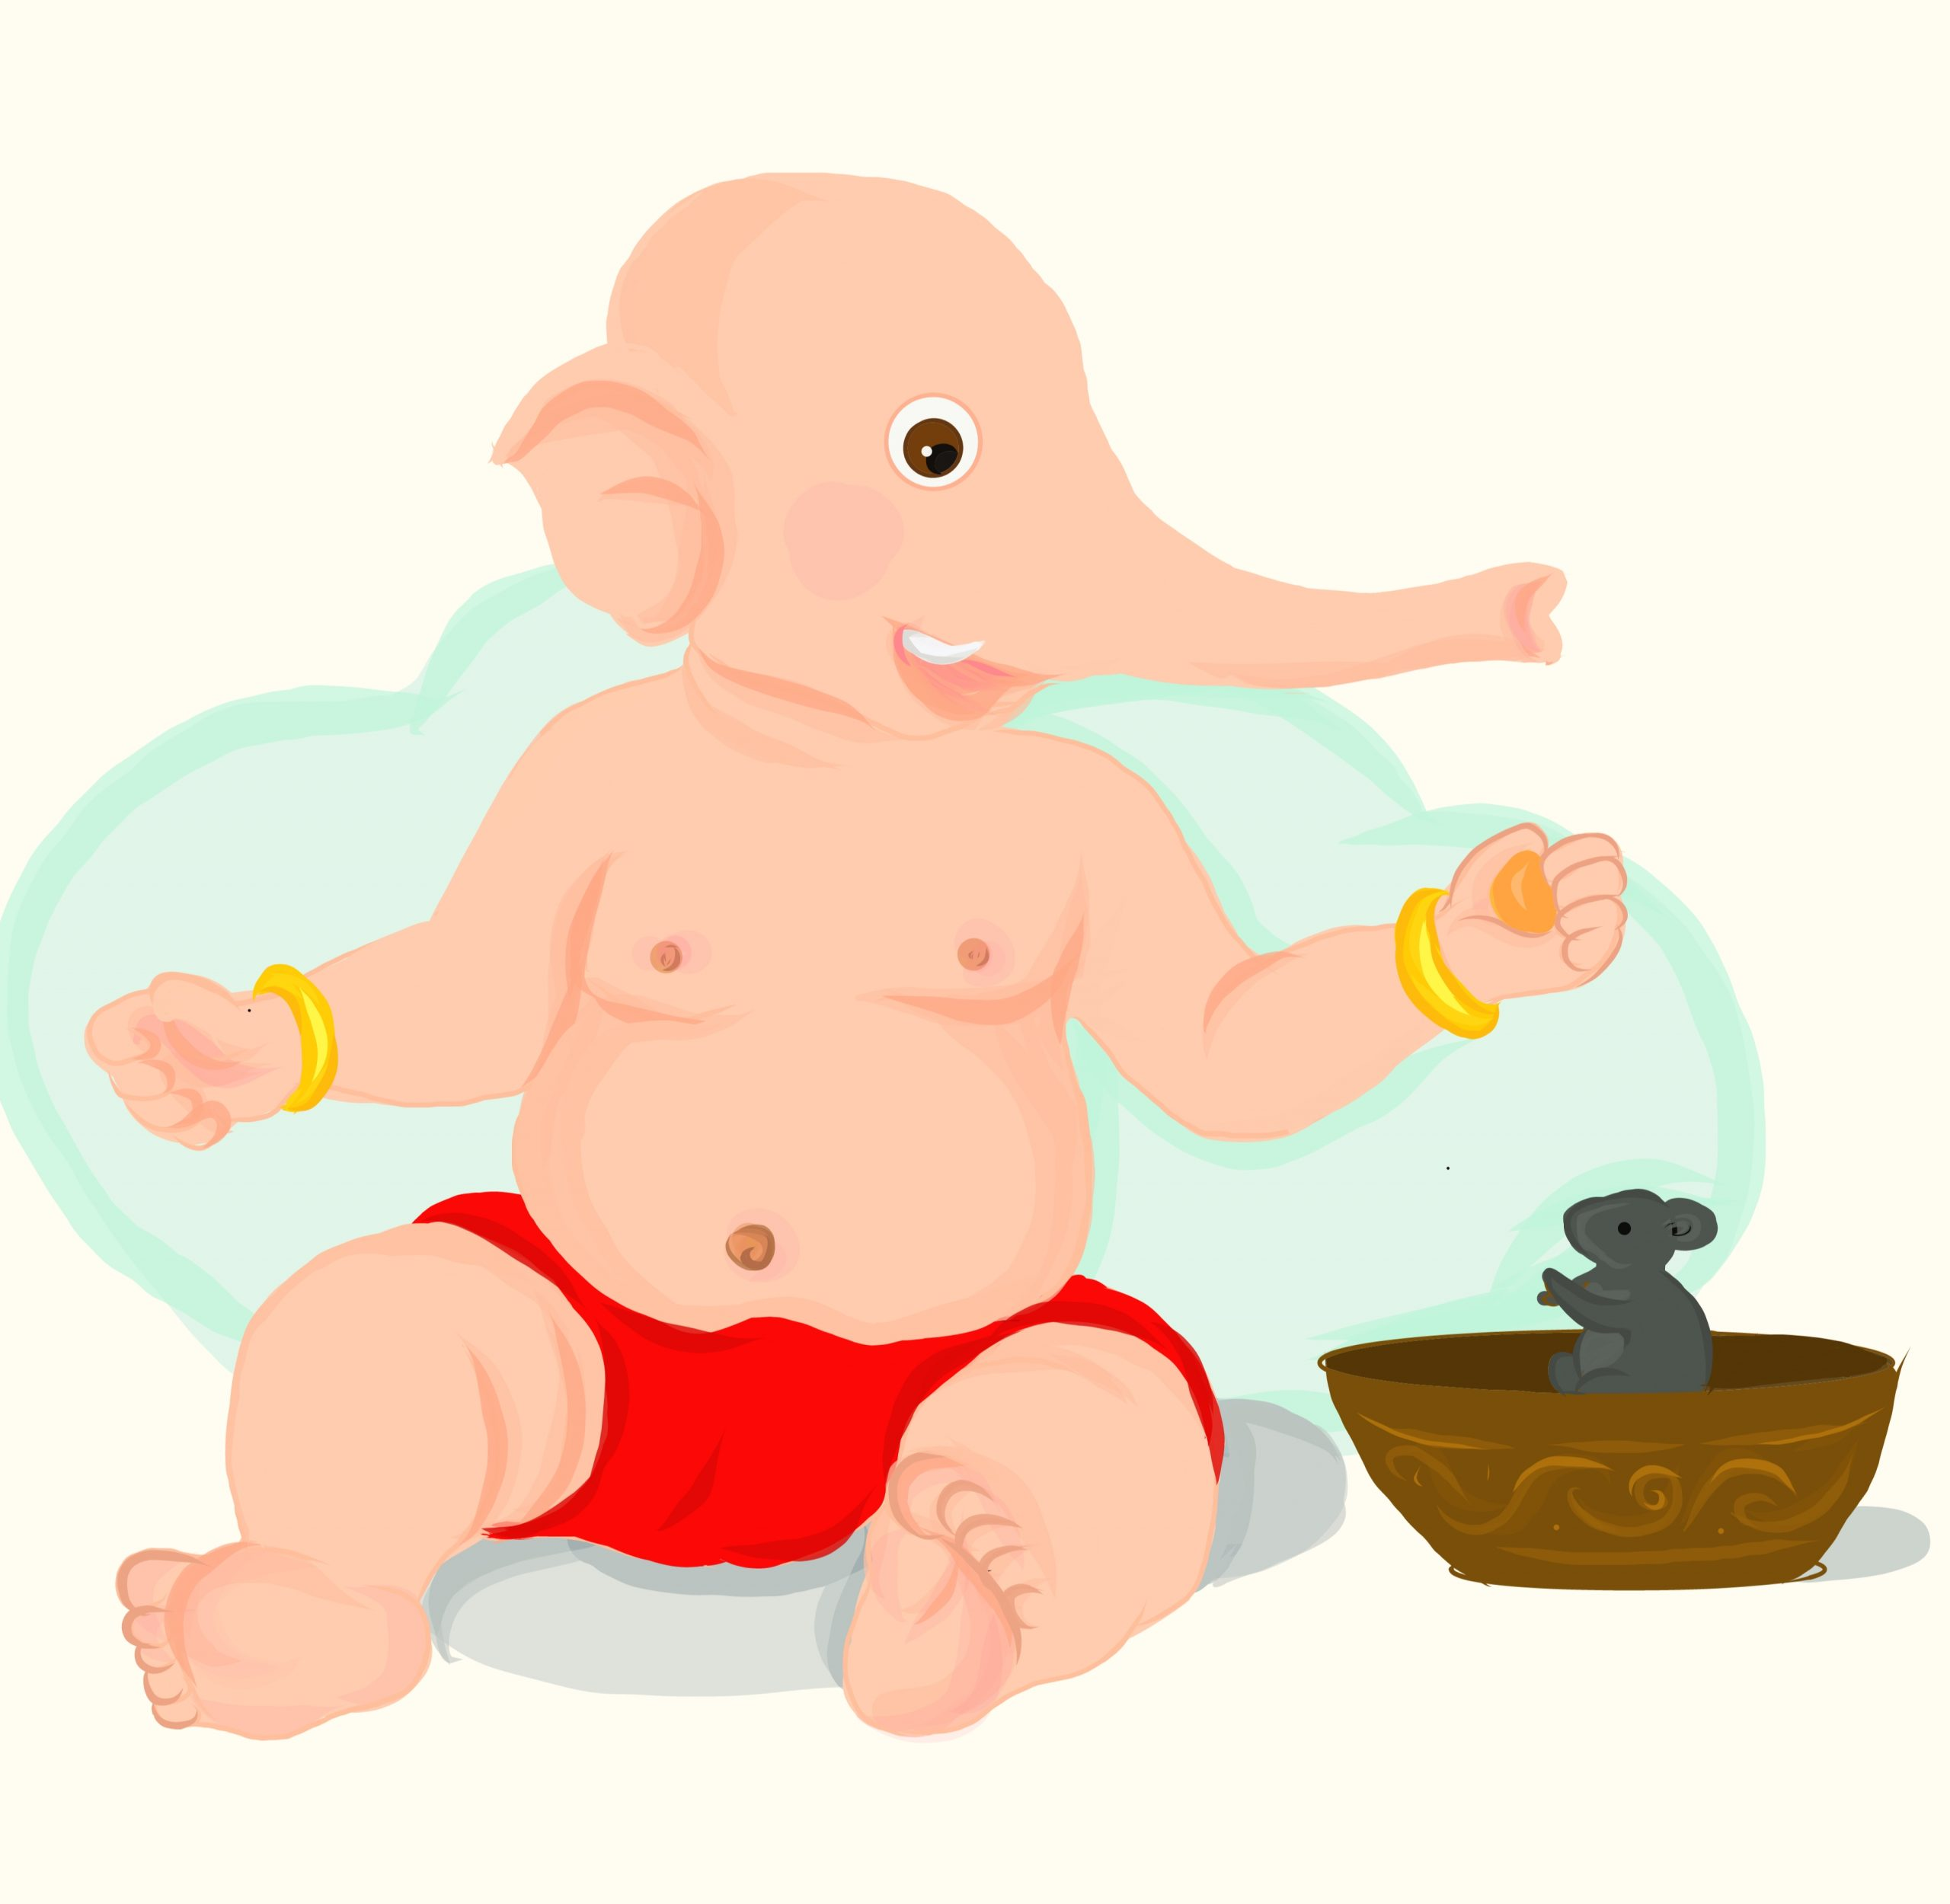 A painting of little lord Ganesha